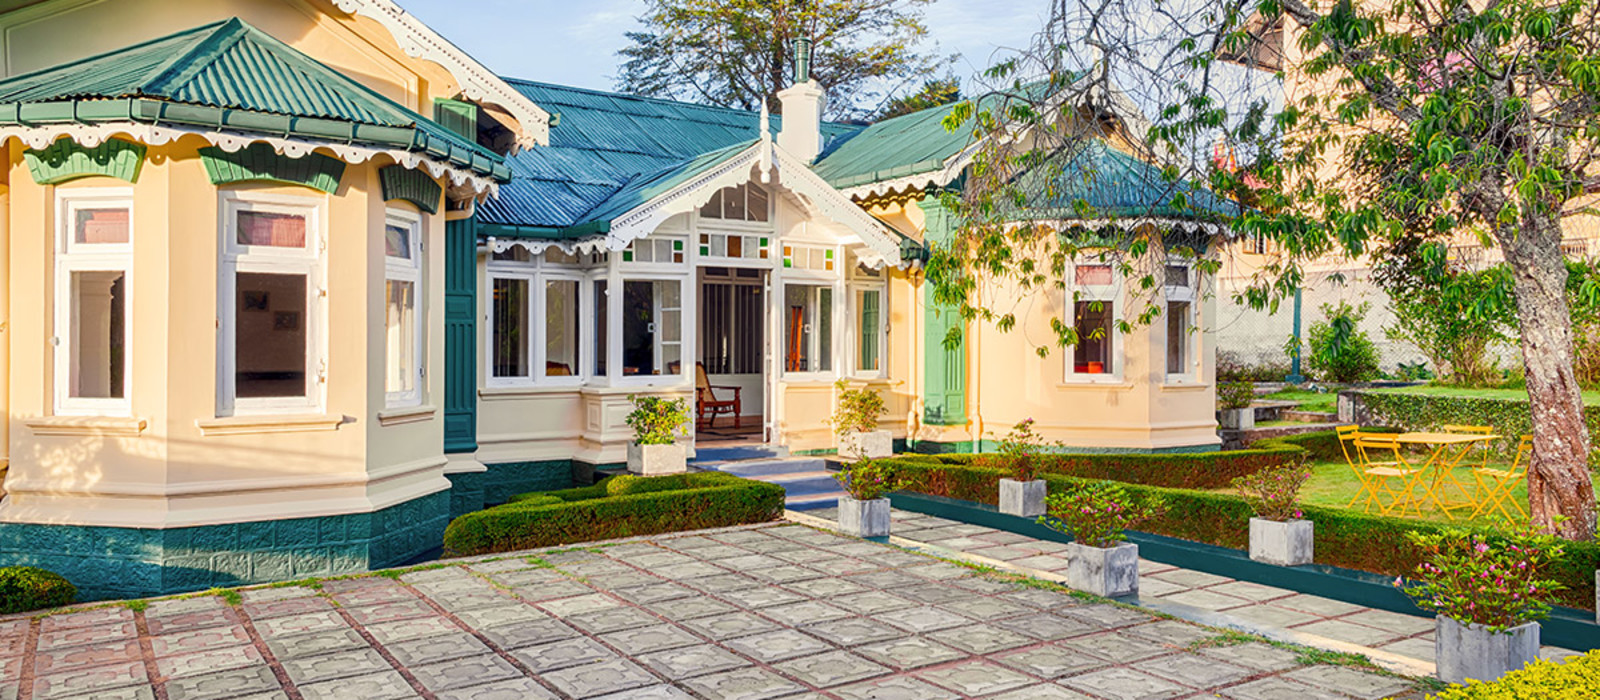 Hotel The Cottage by Jetwing Sri Lanka